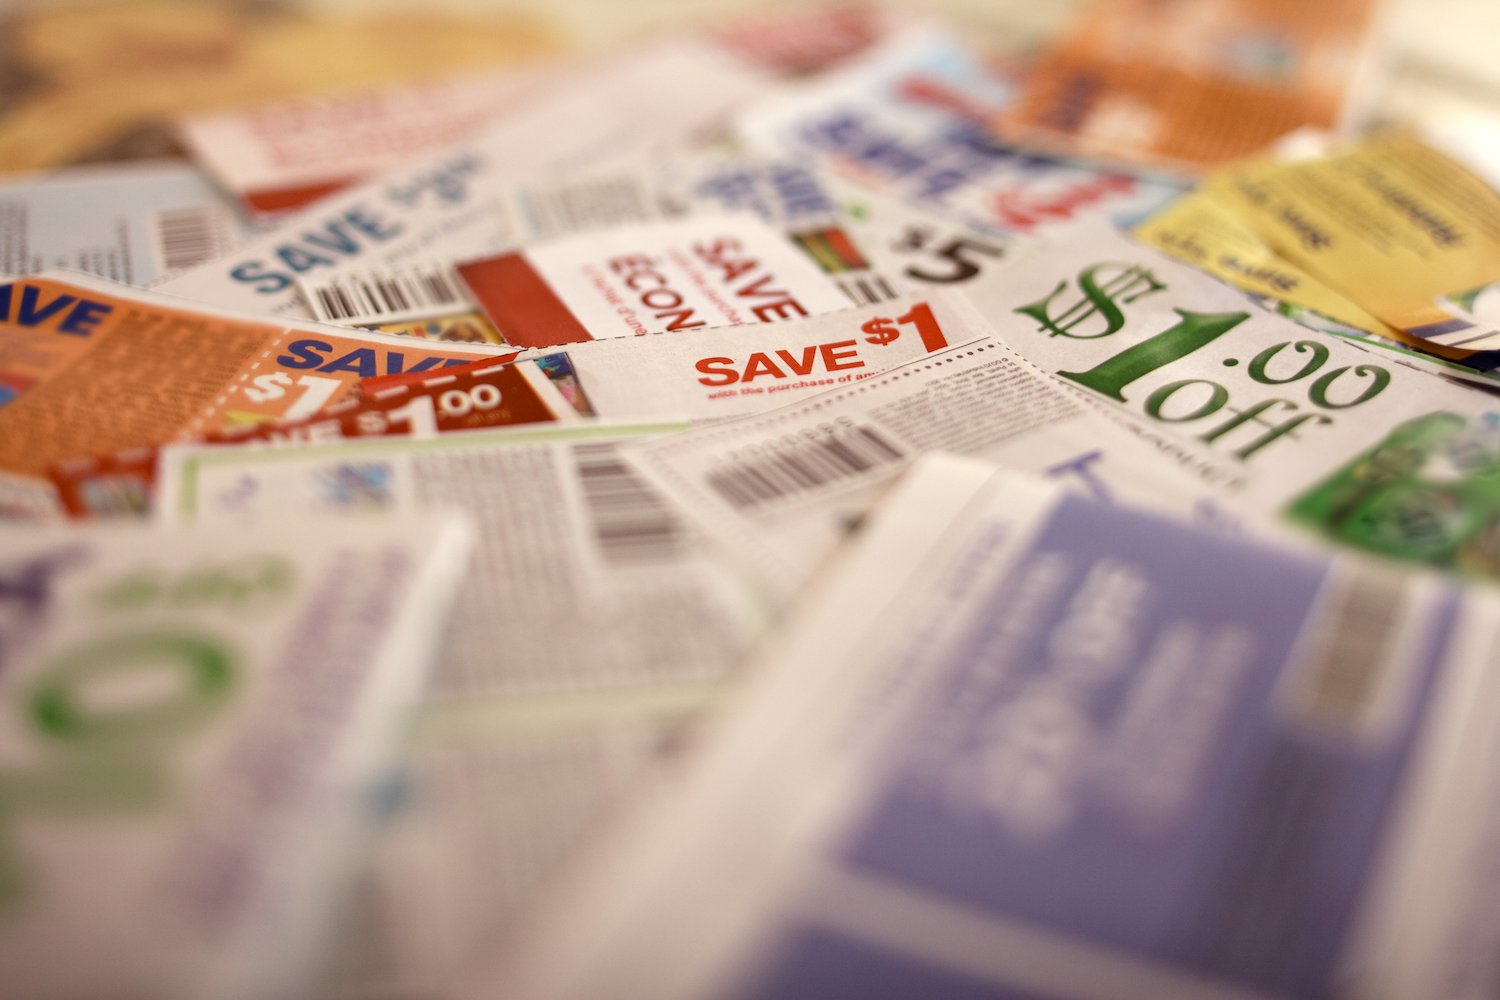 Mastercard Looks to Blockchain to Make Coupons Immutable - CoinDesk